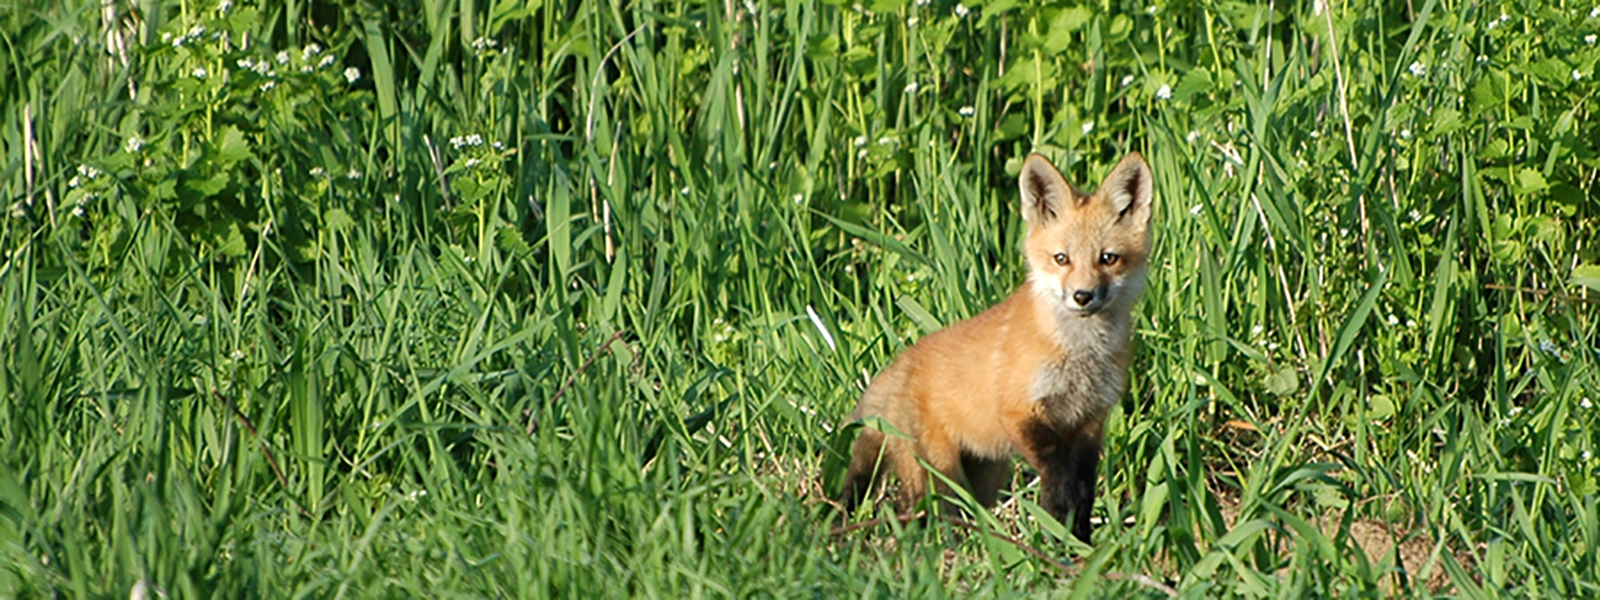 Zeb Albert - A Single Fox Cub - Wood County Park District